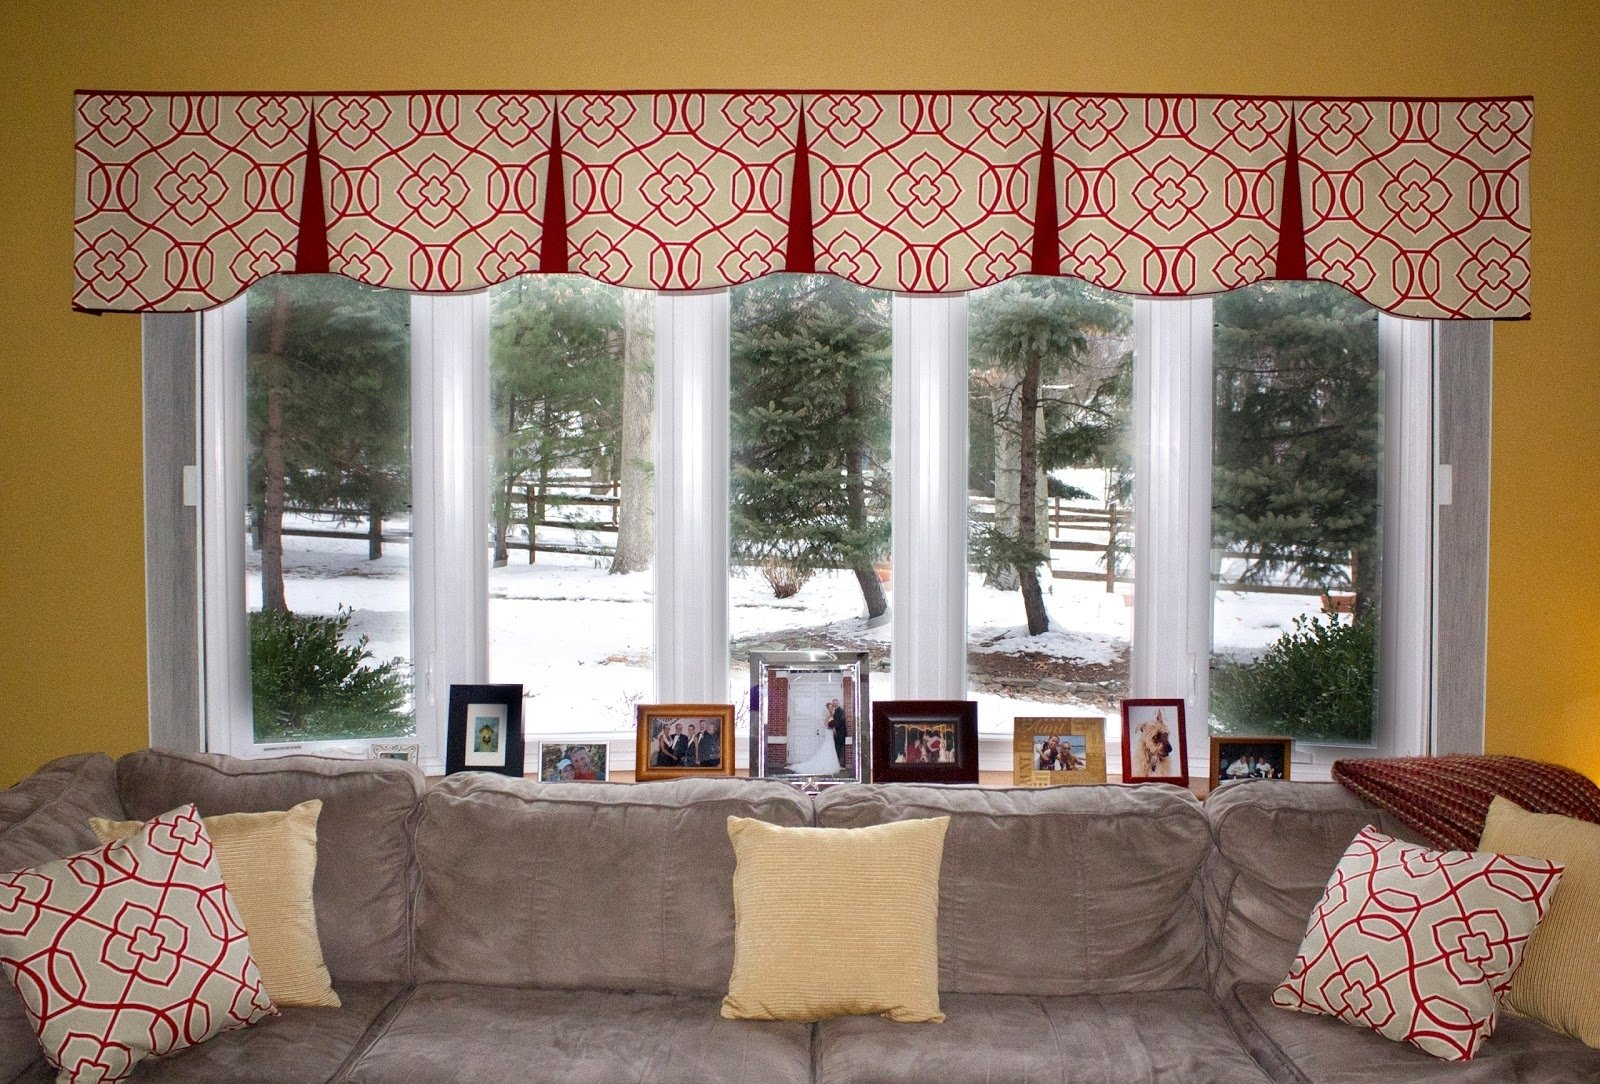 10 Stylish Valance Ideas For Large Windows fancy curtains for living room contemporary window valances family 2020